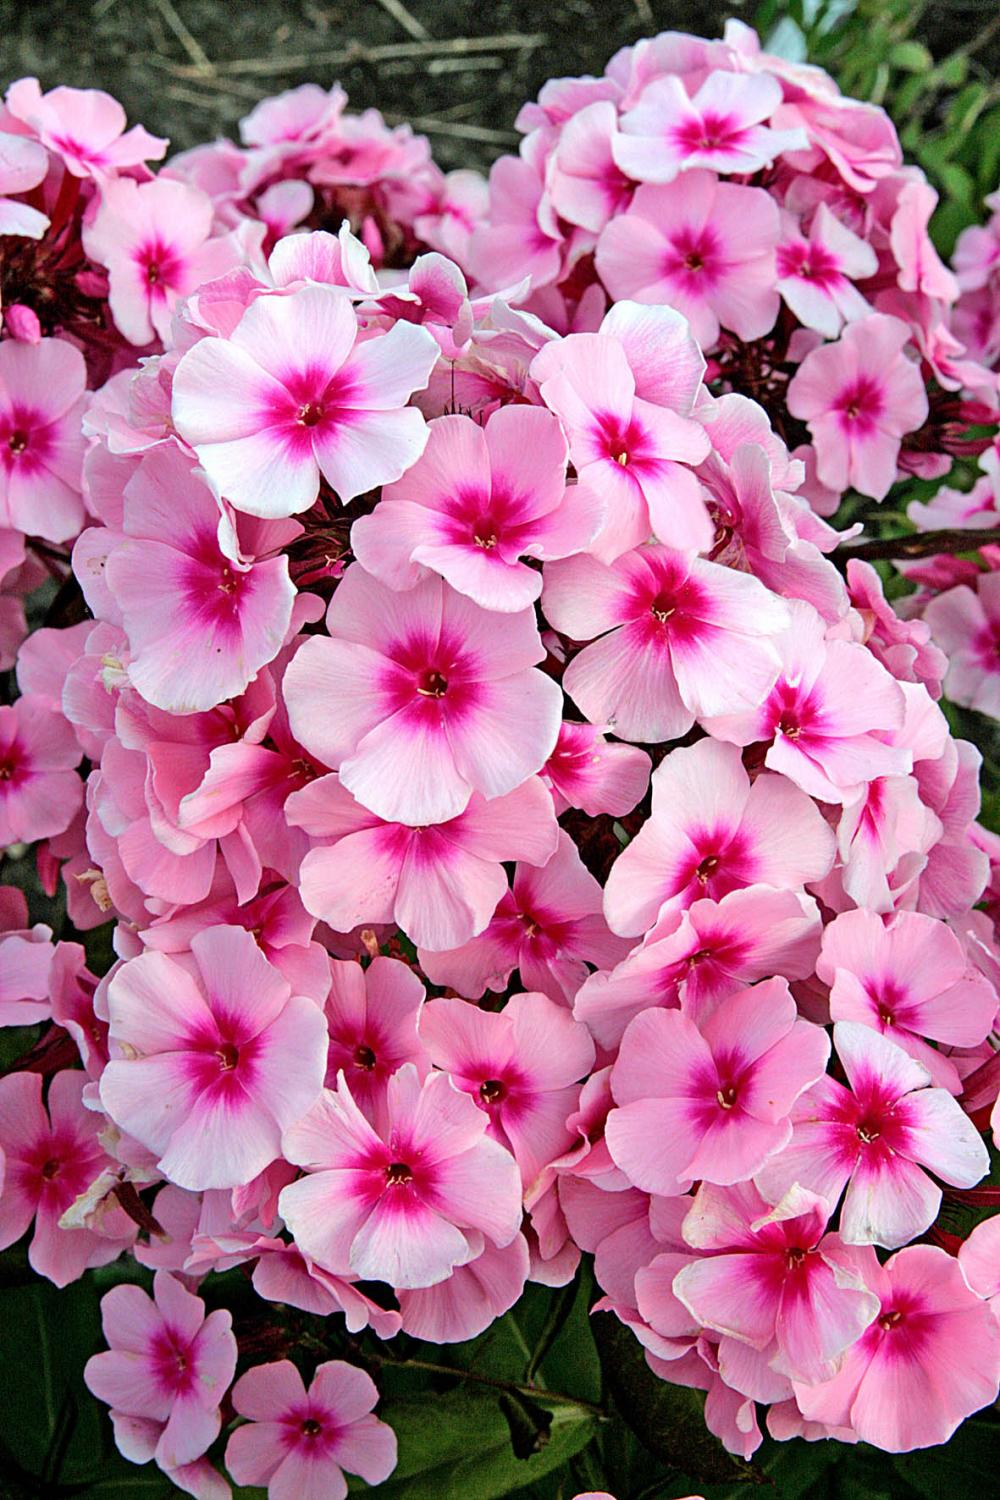 Phlox paniculata Bright Eyes (Flox)